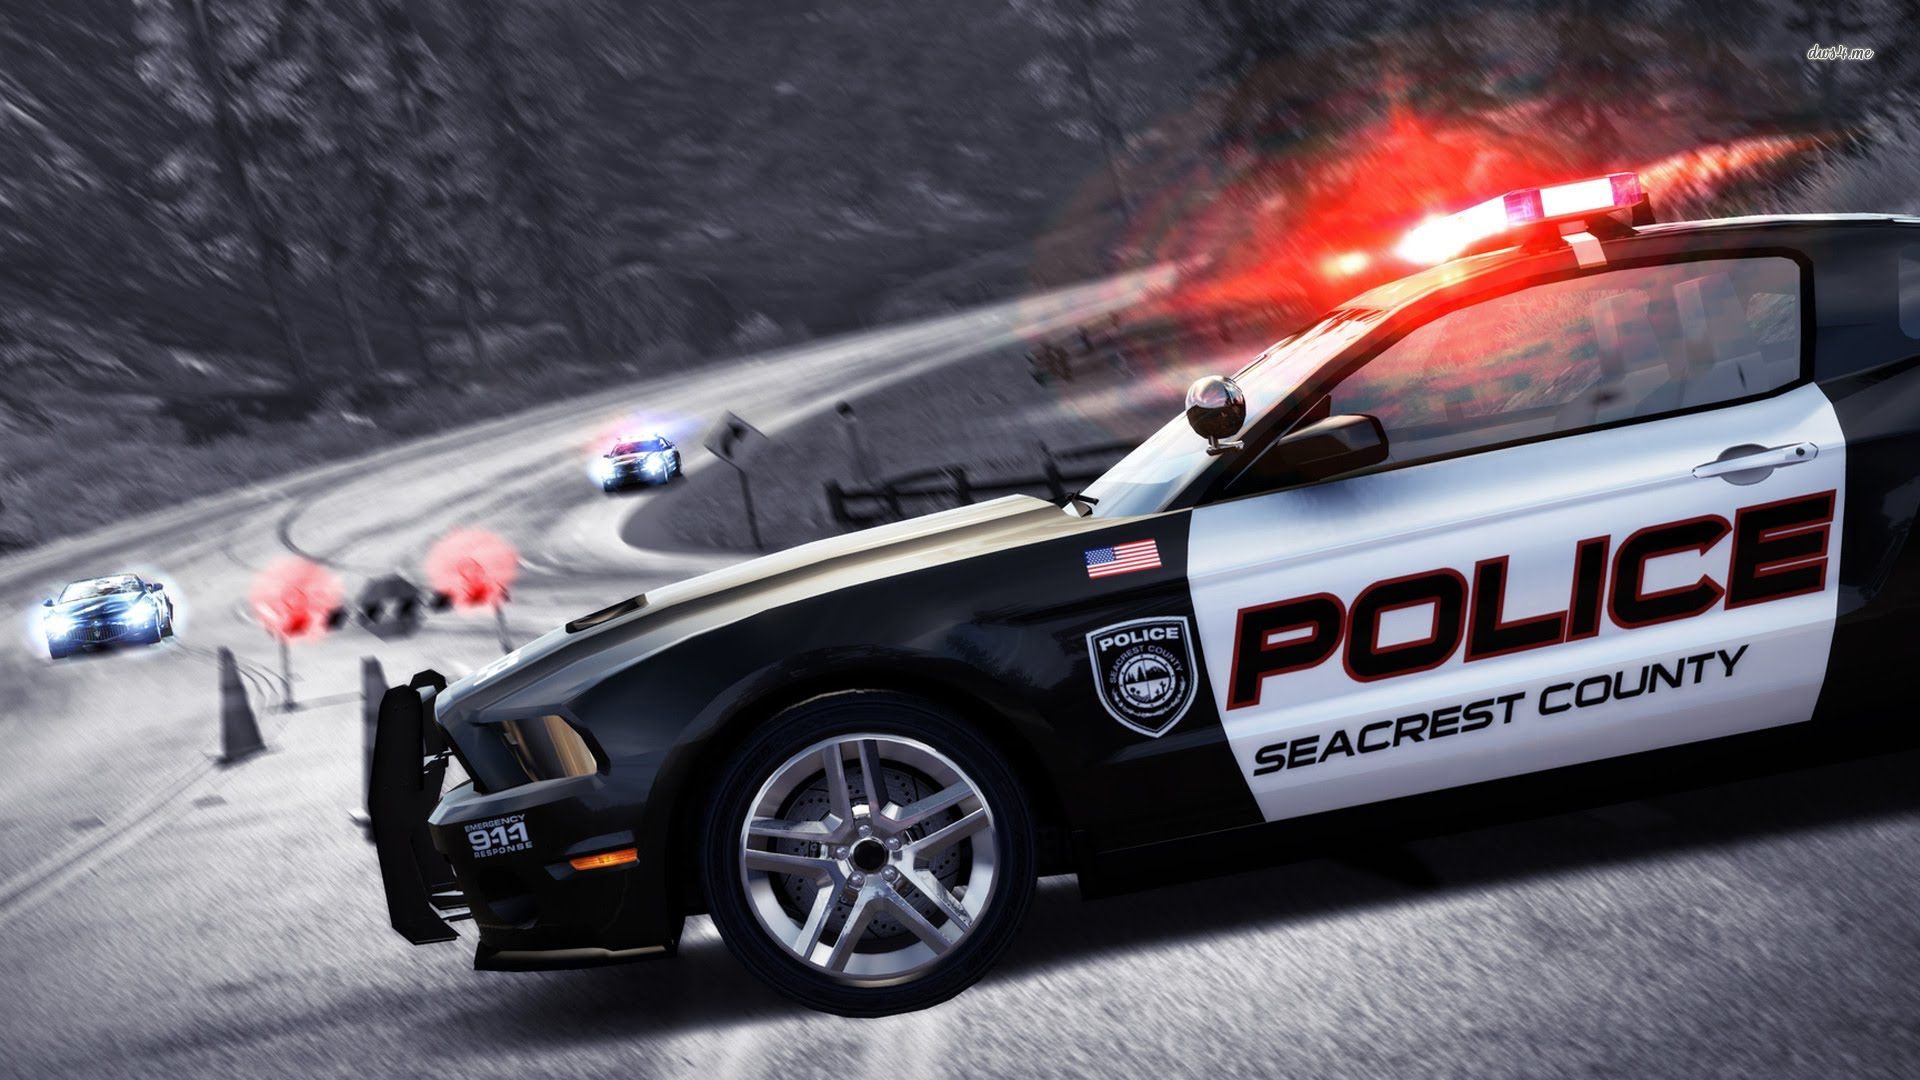 explore police car pictures cartoon games and more